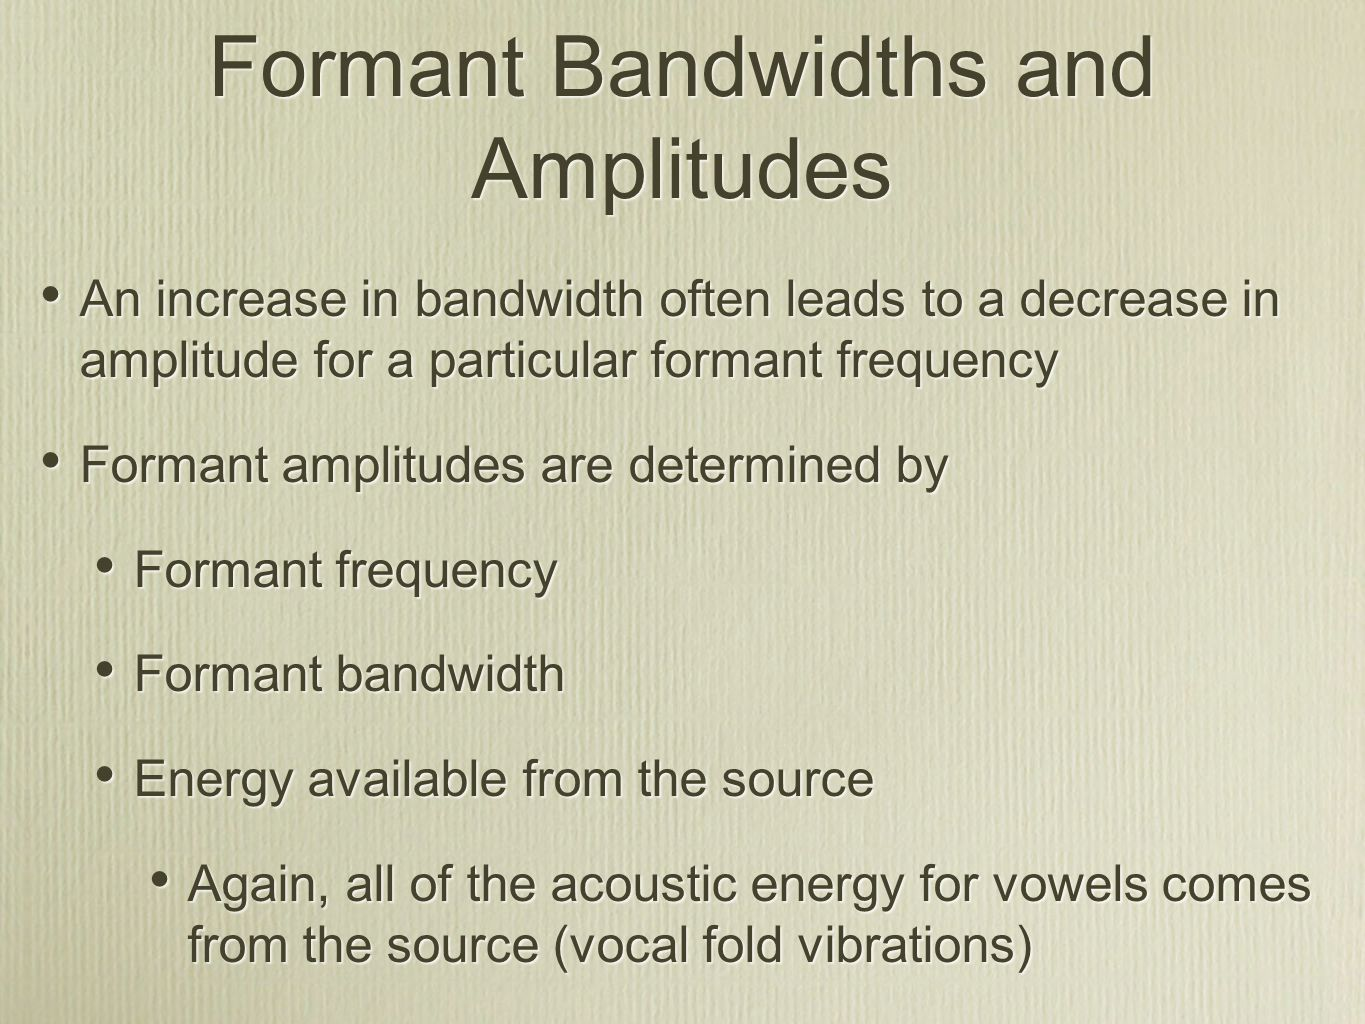 Formant Bandwidths and Amplitudes An increase in bandwidth often leads to a decrease in amplitude for a particular formant frequency Formant amplitudes are determined by Formant frequency Formant bandwidth Energy available from the source Again, all of the acoustic energy for vowels comes from the source (vocal fold vibrations) An increase in bandwidth often leads to a decrease in amplitude for a particular formant frequency Formant amplitudes are determined by Formant frequency Formant bandwidth Energy available from the source Again, all of the acoustic energy for vowels comes from the source (vocal fold vibrations)